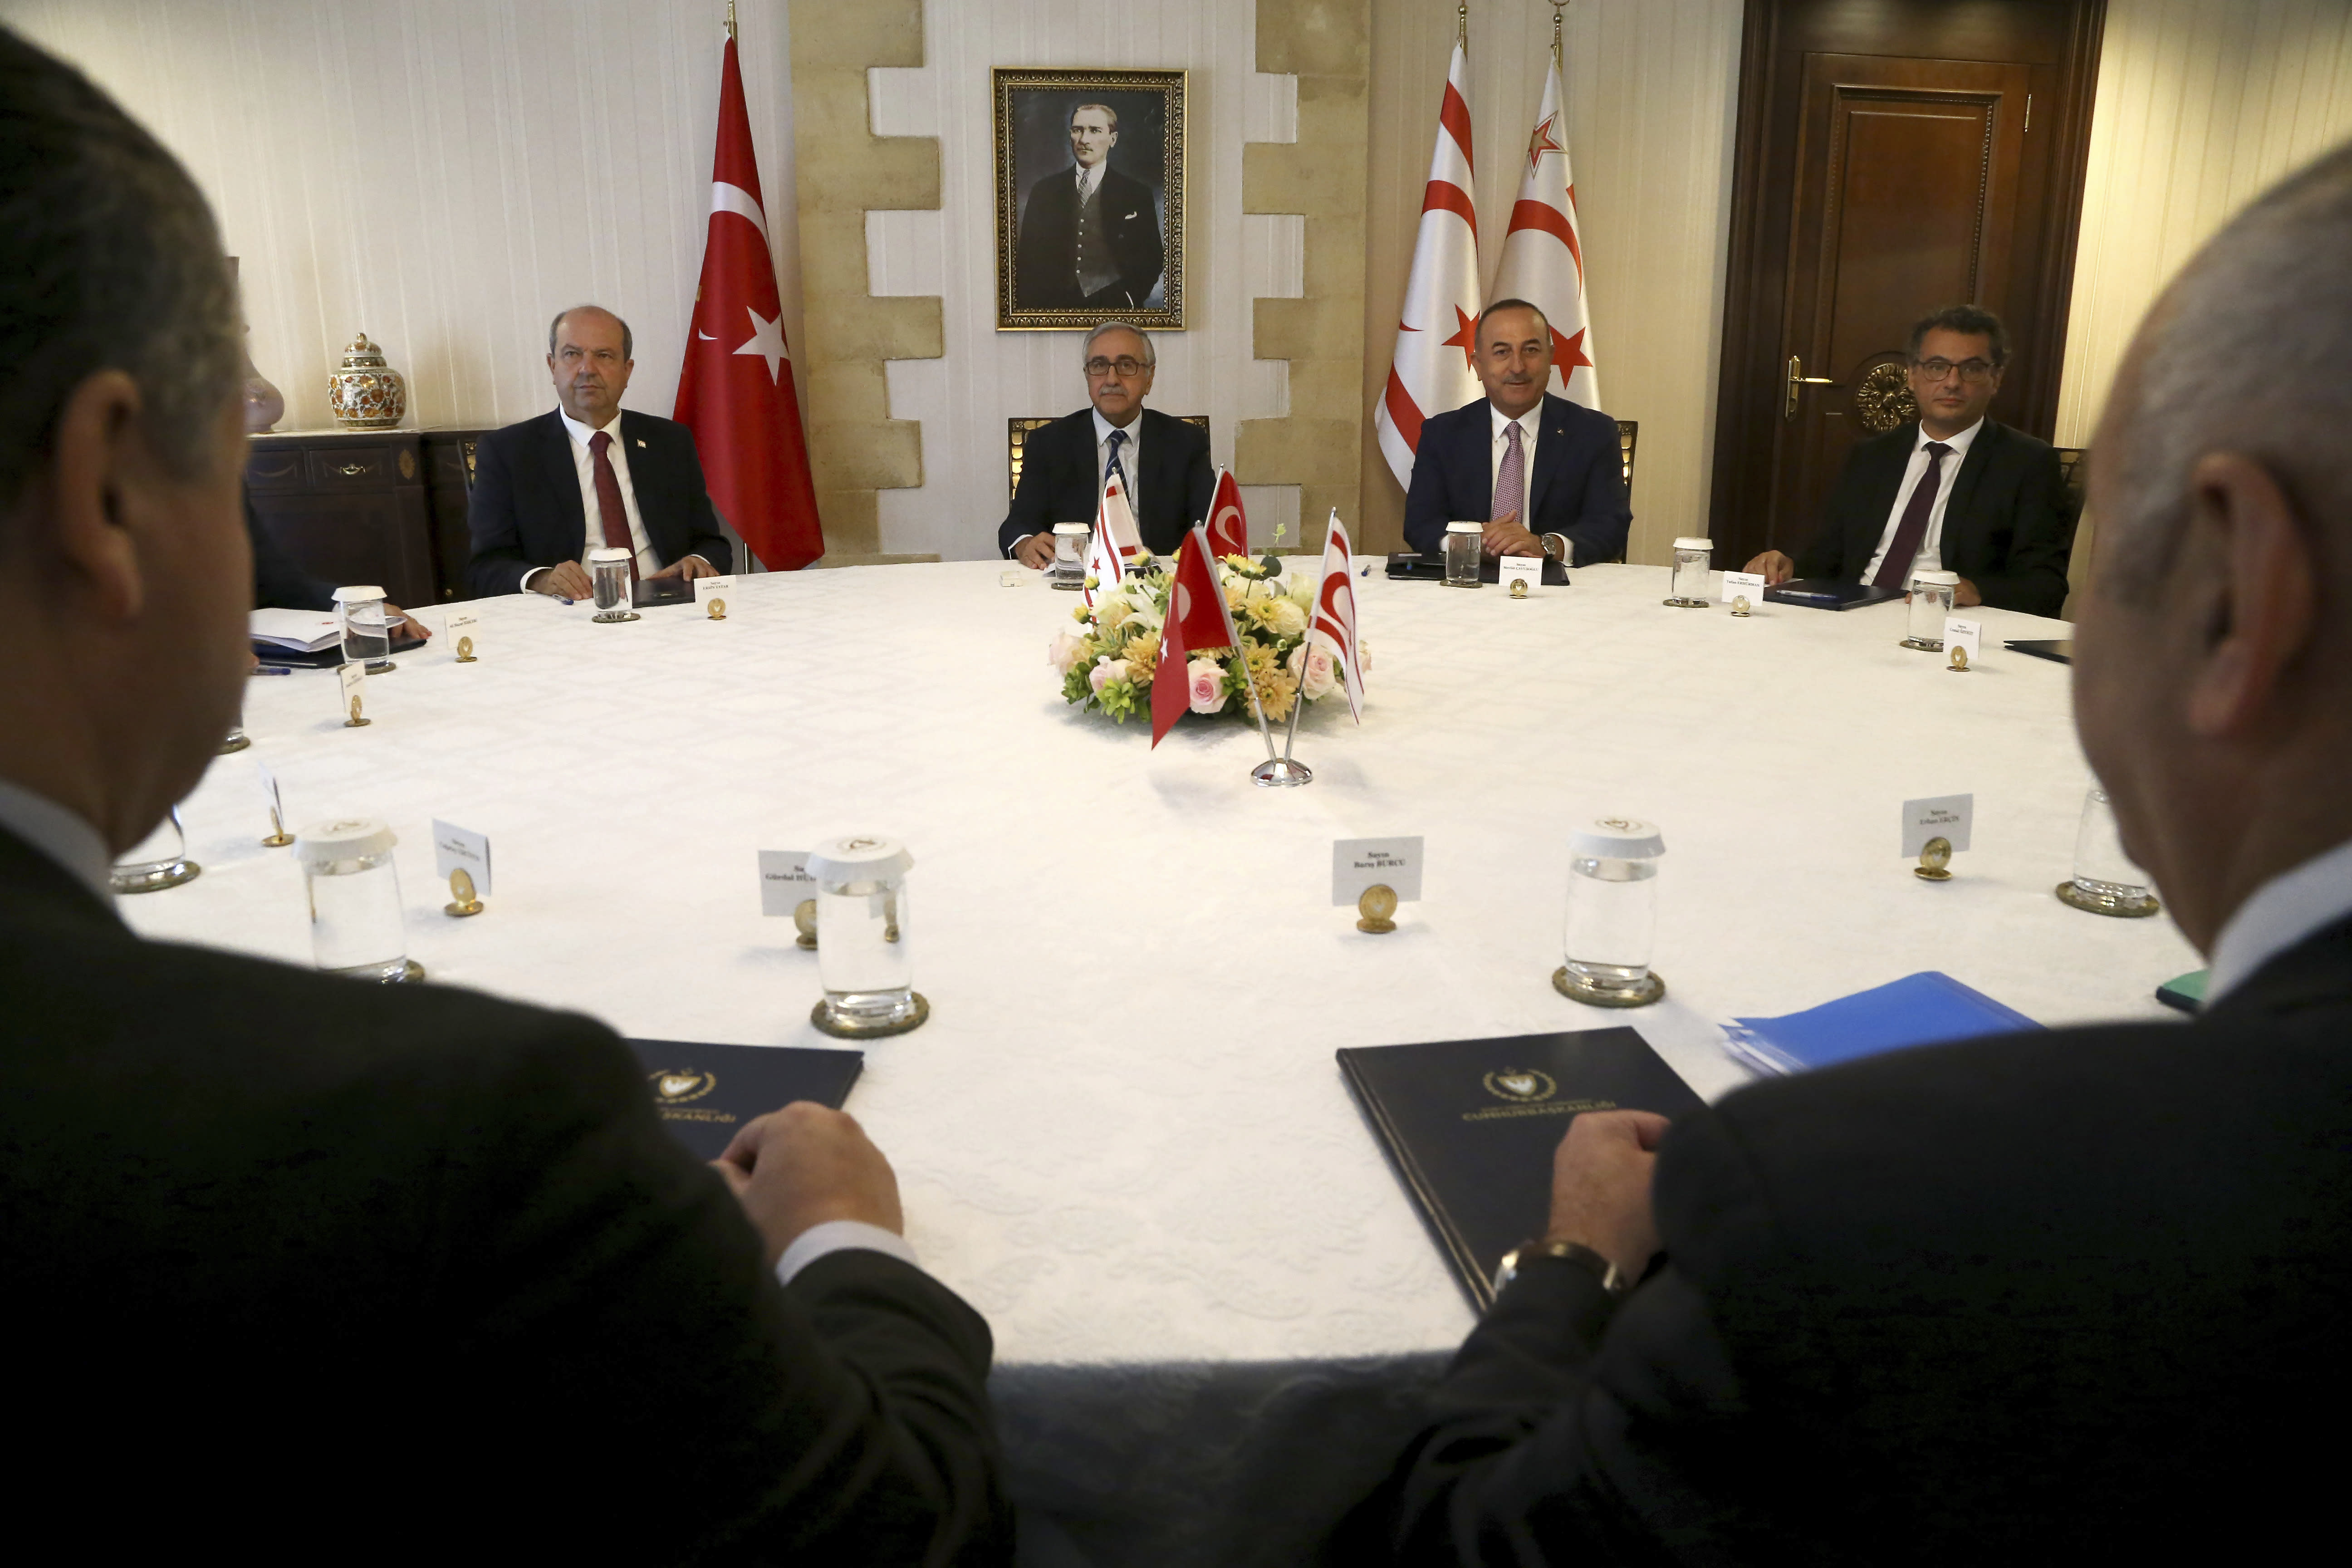 Turkish Foreign Minister Mevlut Cavusoglu, center right, and Turkish Cypriot leader Mustafa Akinci, center left, during a meeting in the Turkish occupied area in the northern part of divided capital Nicosia, Cyprus, Monday, Sept. 9, 2019. Cavusoglu is in the northern part of divided Cyprus for three-day visit. (AP Photo/Petros Karadjias)